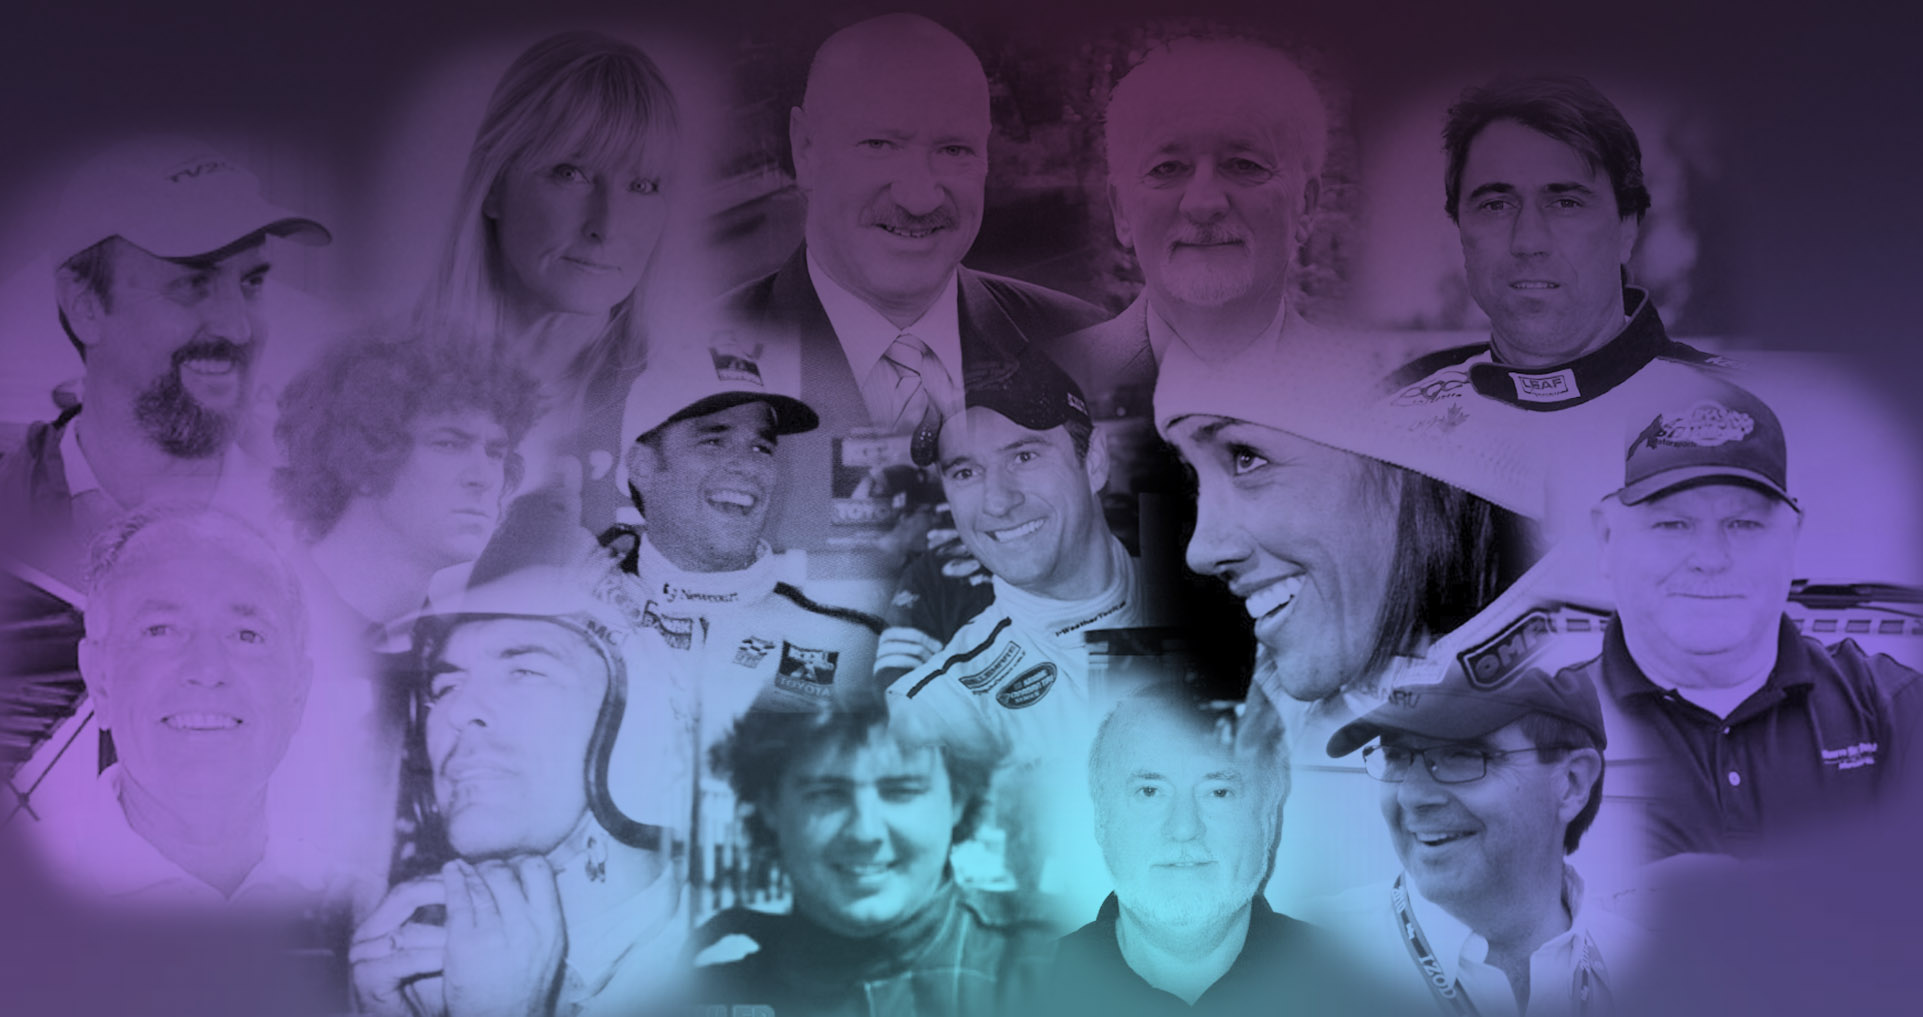 FIFTEEN NEW MEMBERS TO BE INDUCTED TO THE CANADIAN MOTORSPORT HALL OF FAME